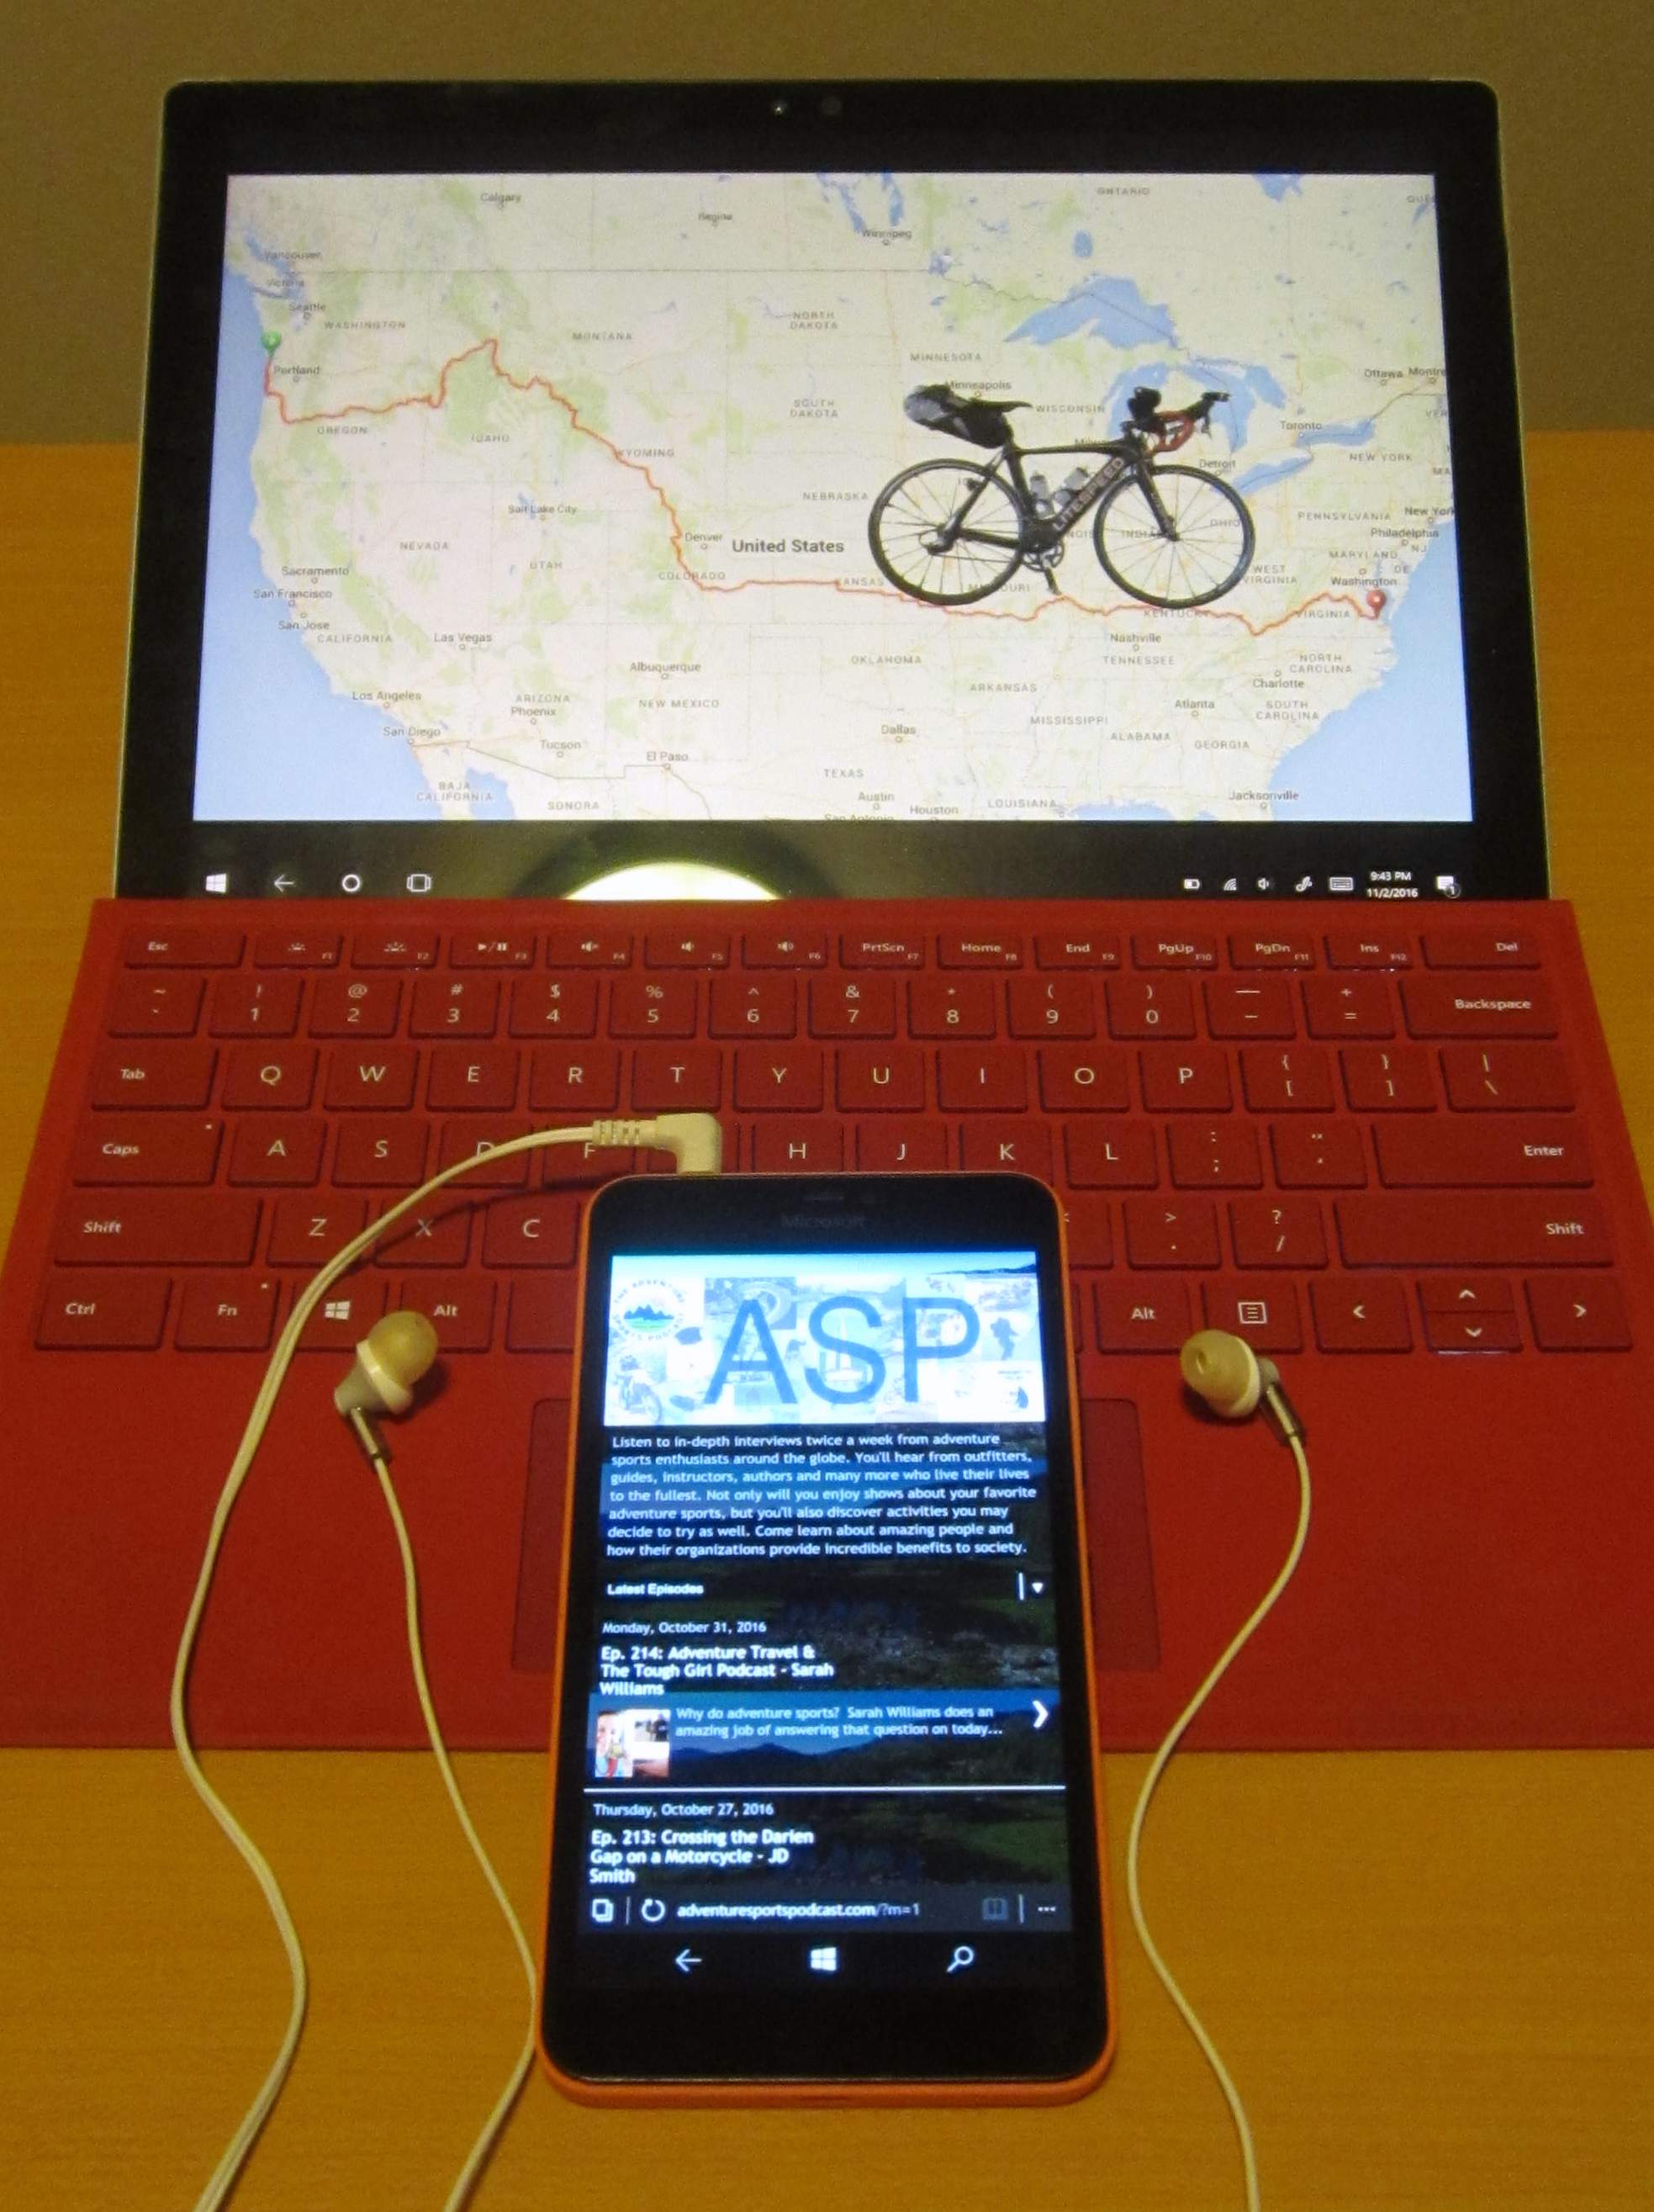 Red Microsoft Surface Pro 4 with Lumia 640 XL playing ASP podcast.